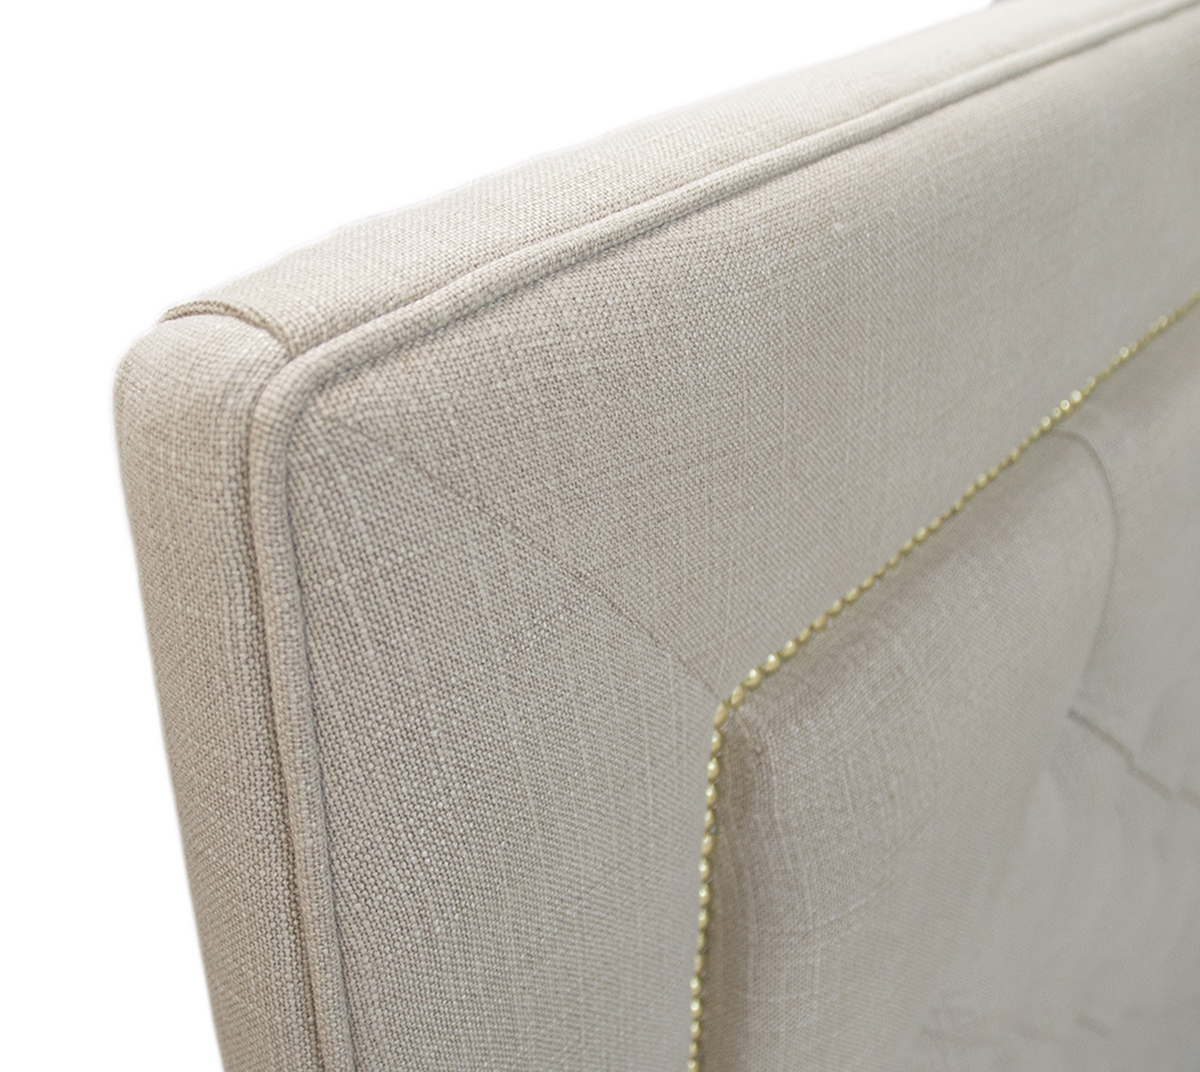 Bespoke Coolmore Headboard Close Up in 15014 Bronze Fabric Collection